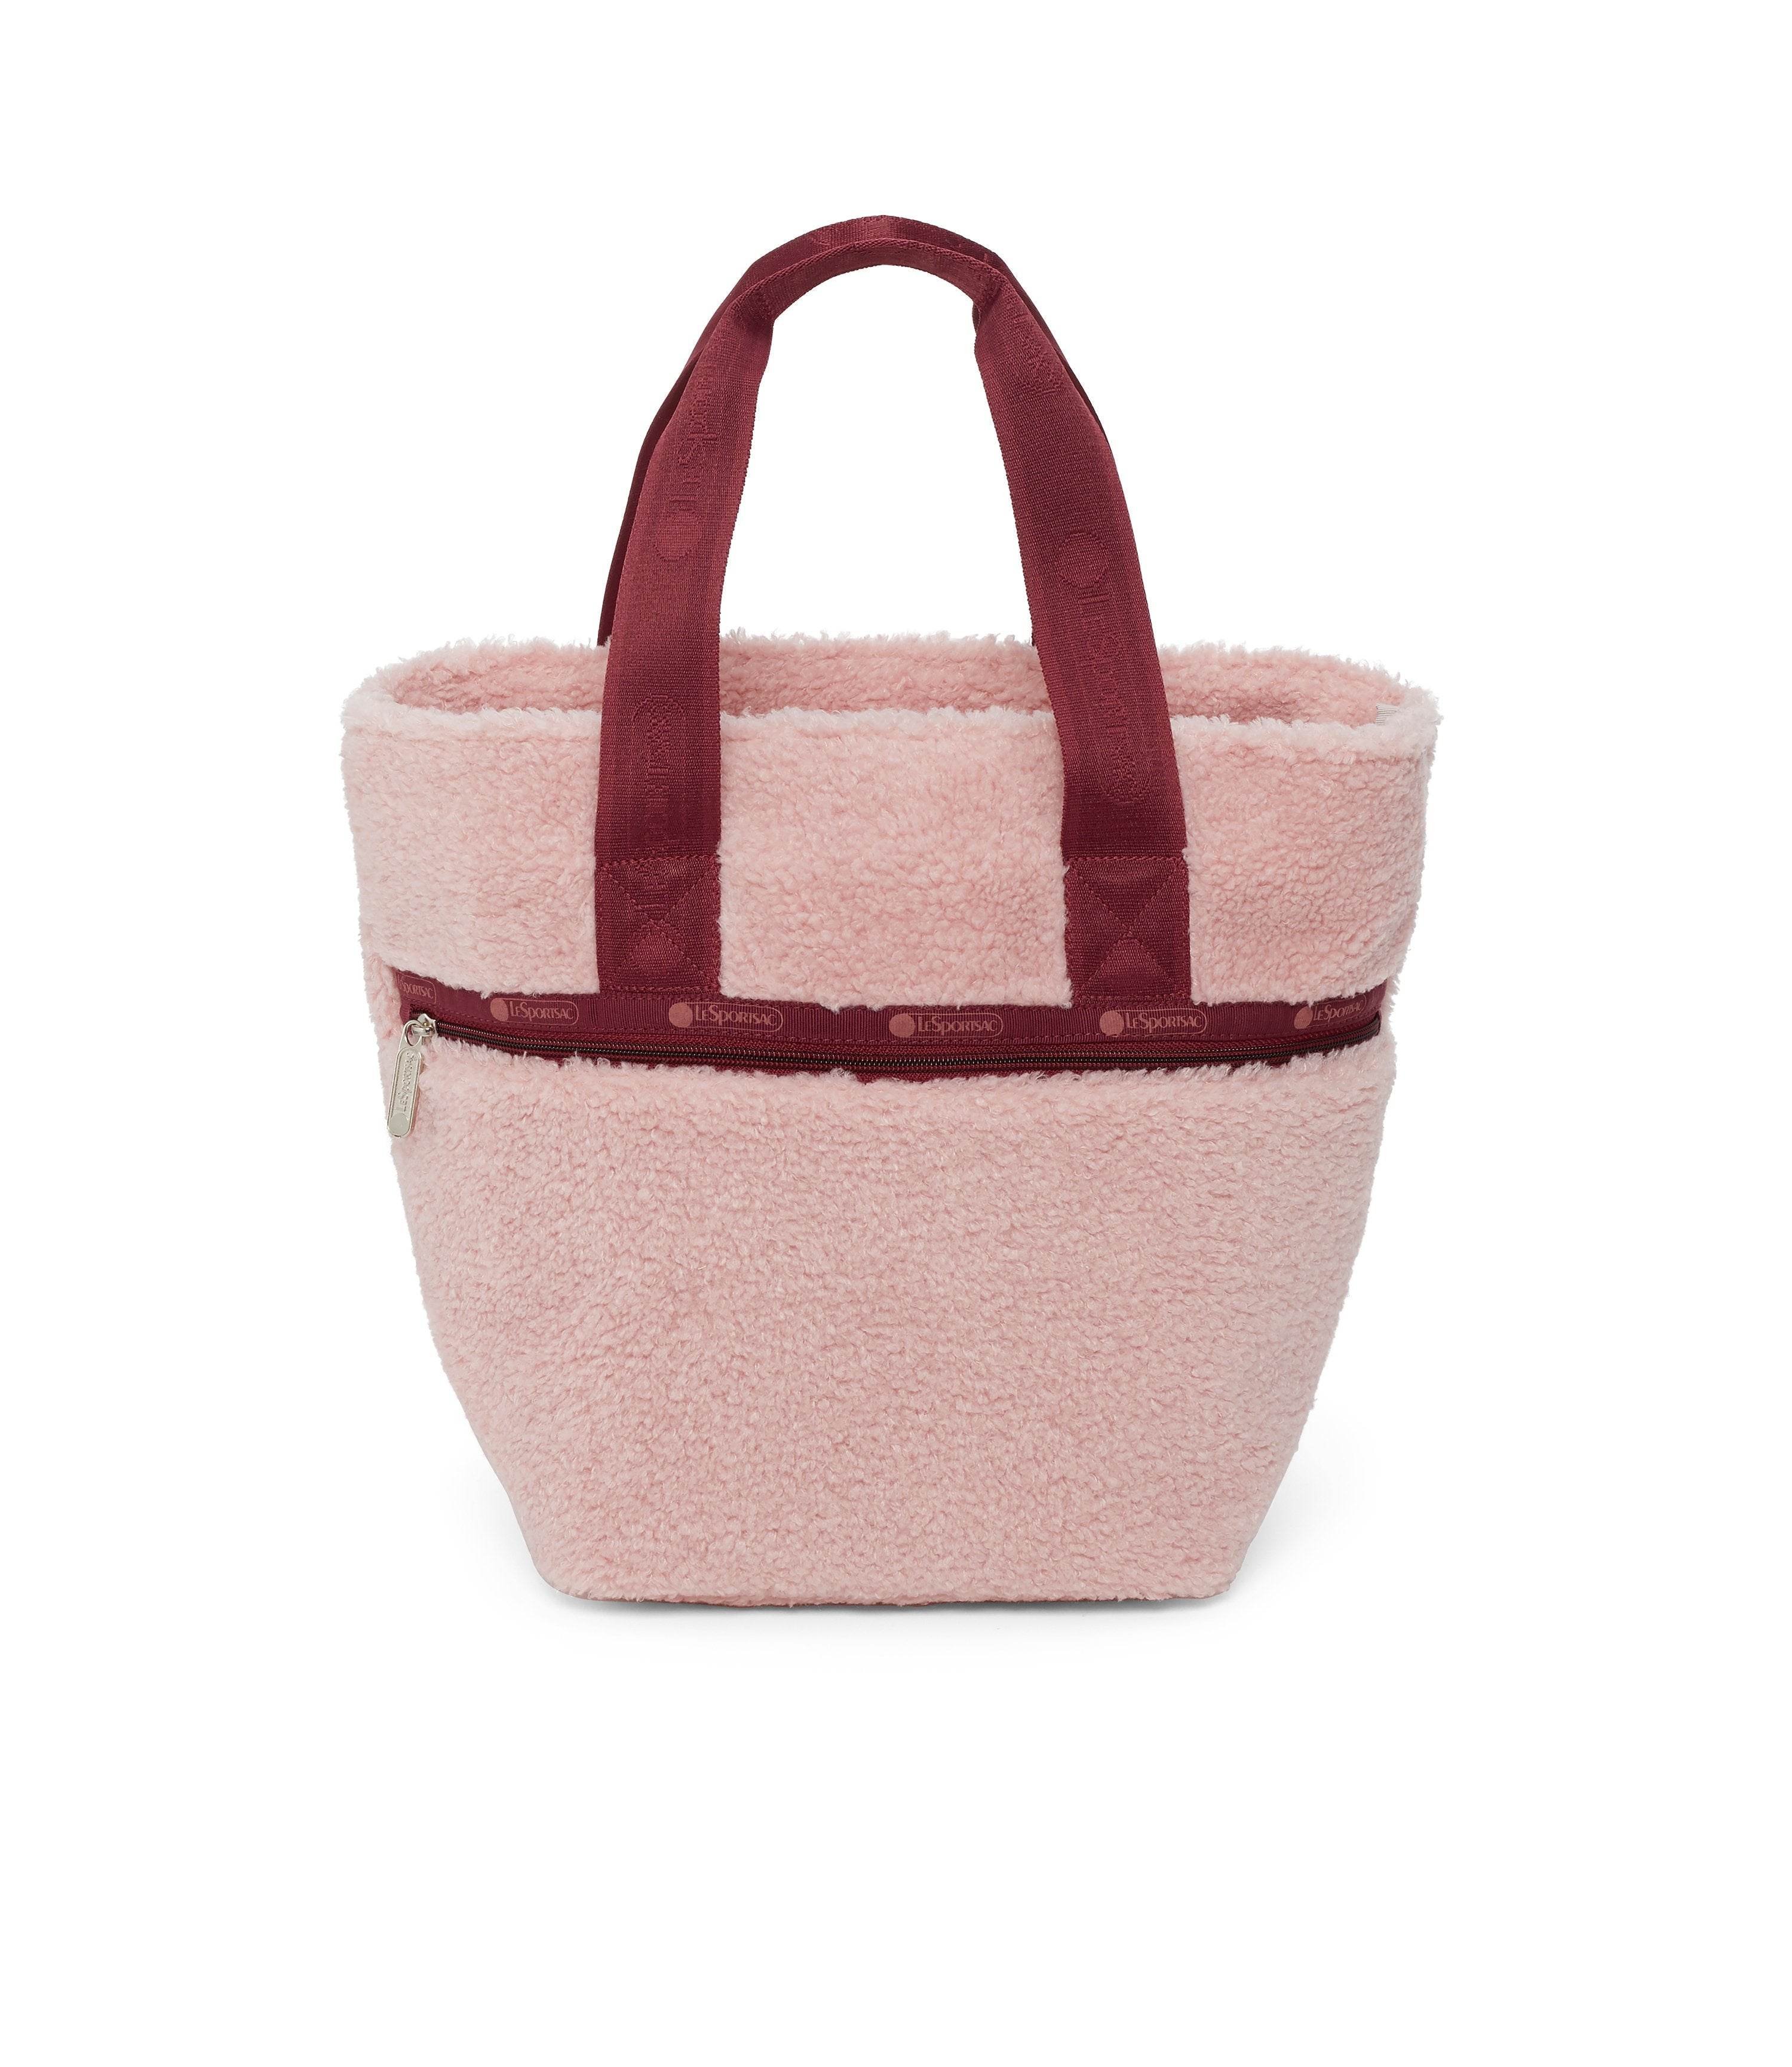 Small Elle Tote, Nylon Tote Bags, LeSportsac, Pink Sherpa